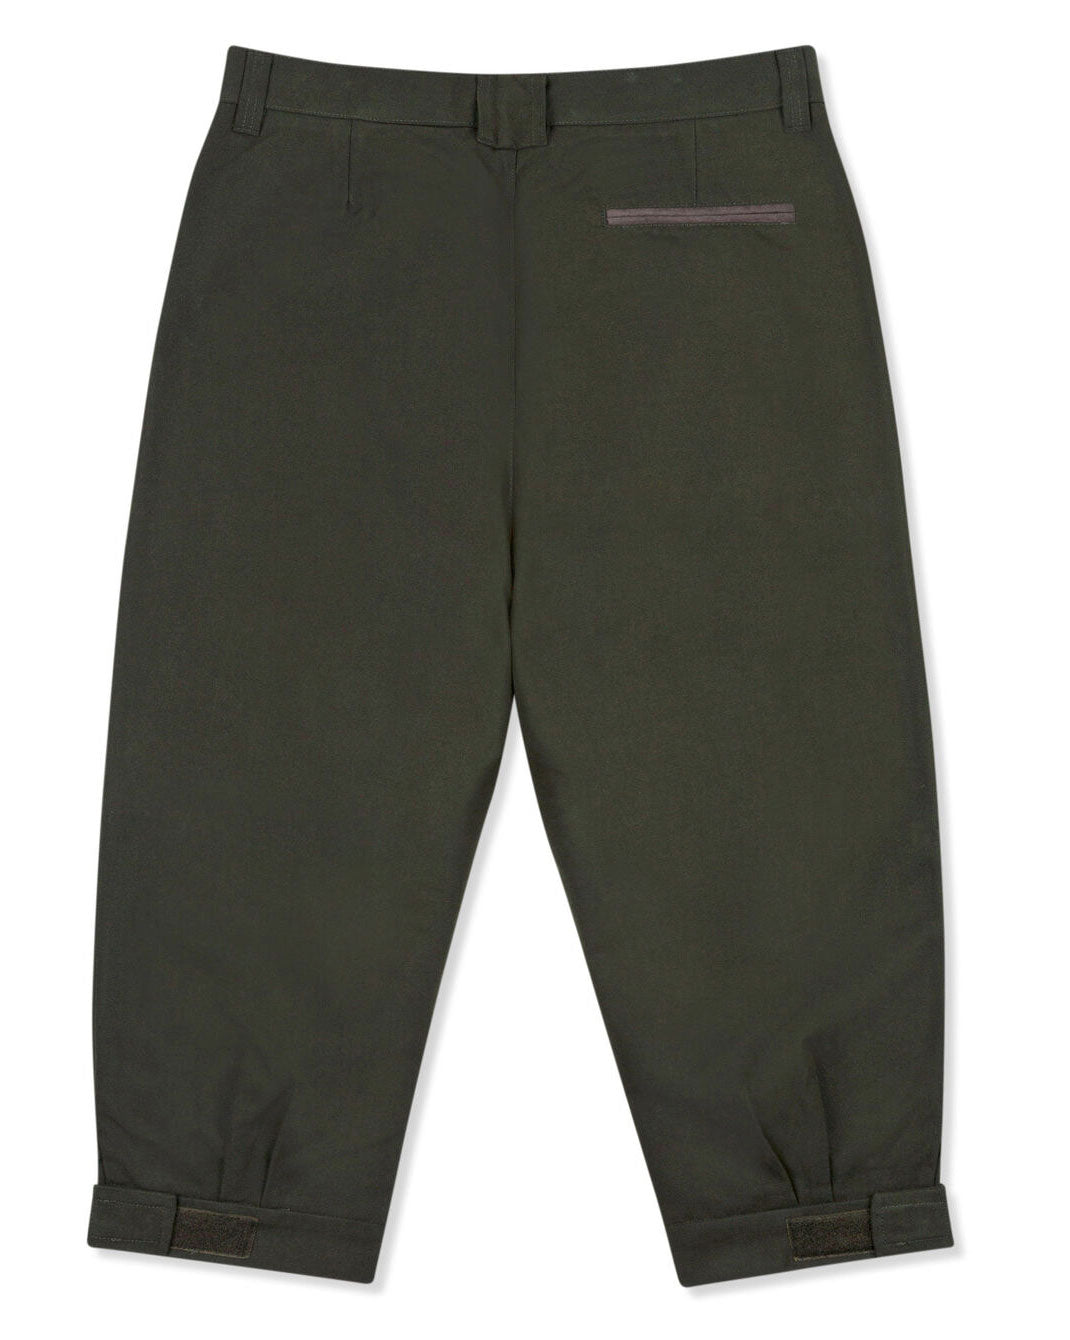 Back View Musto Sporting BR2 Breeks